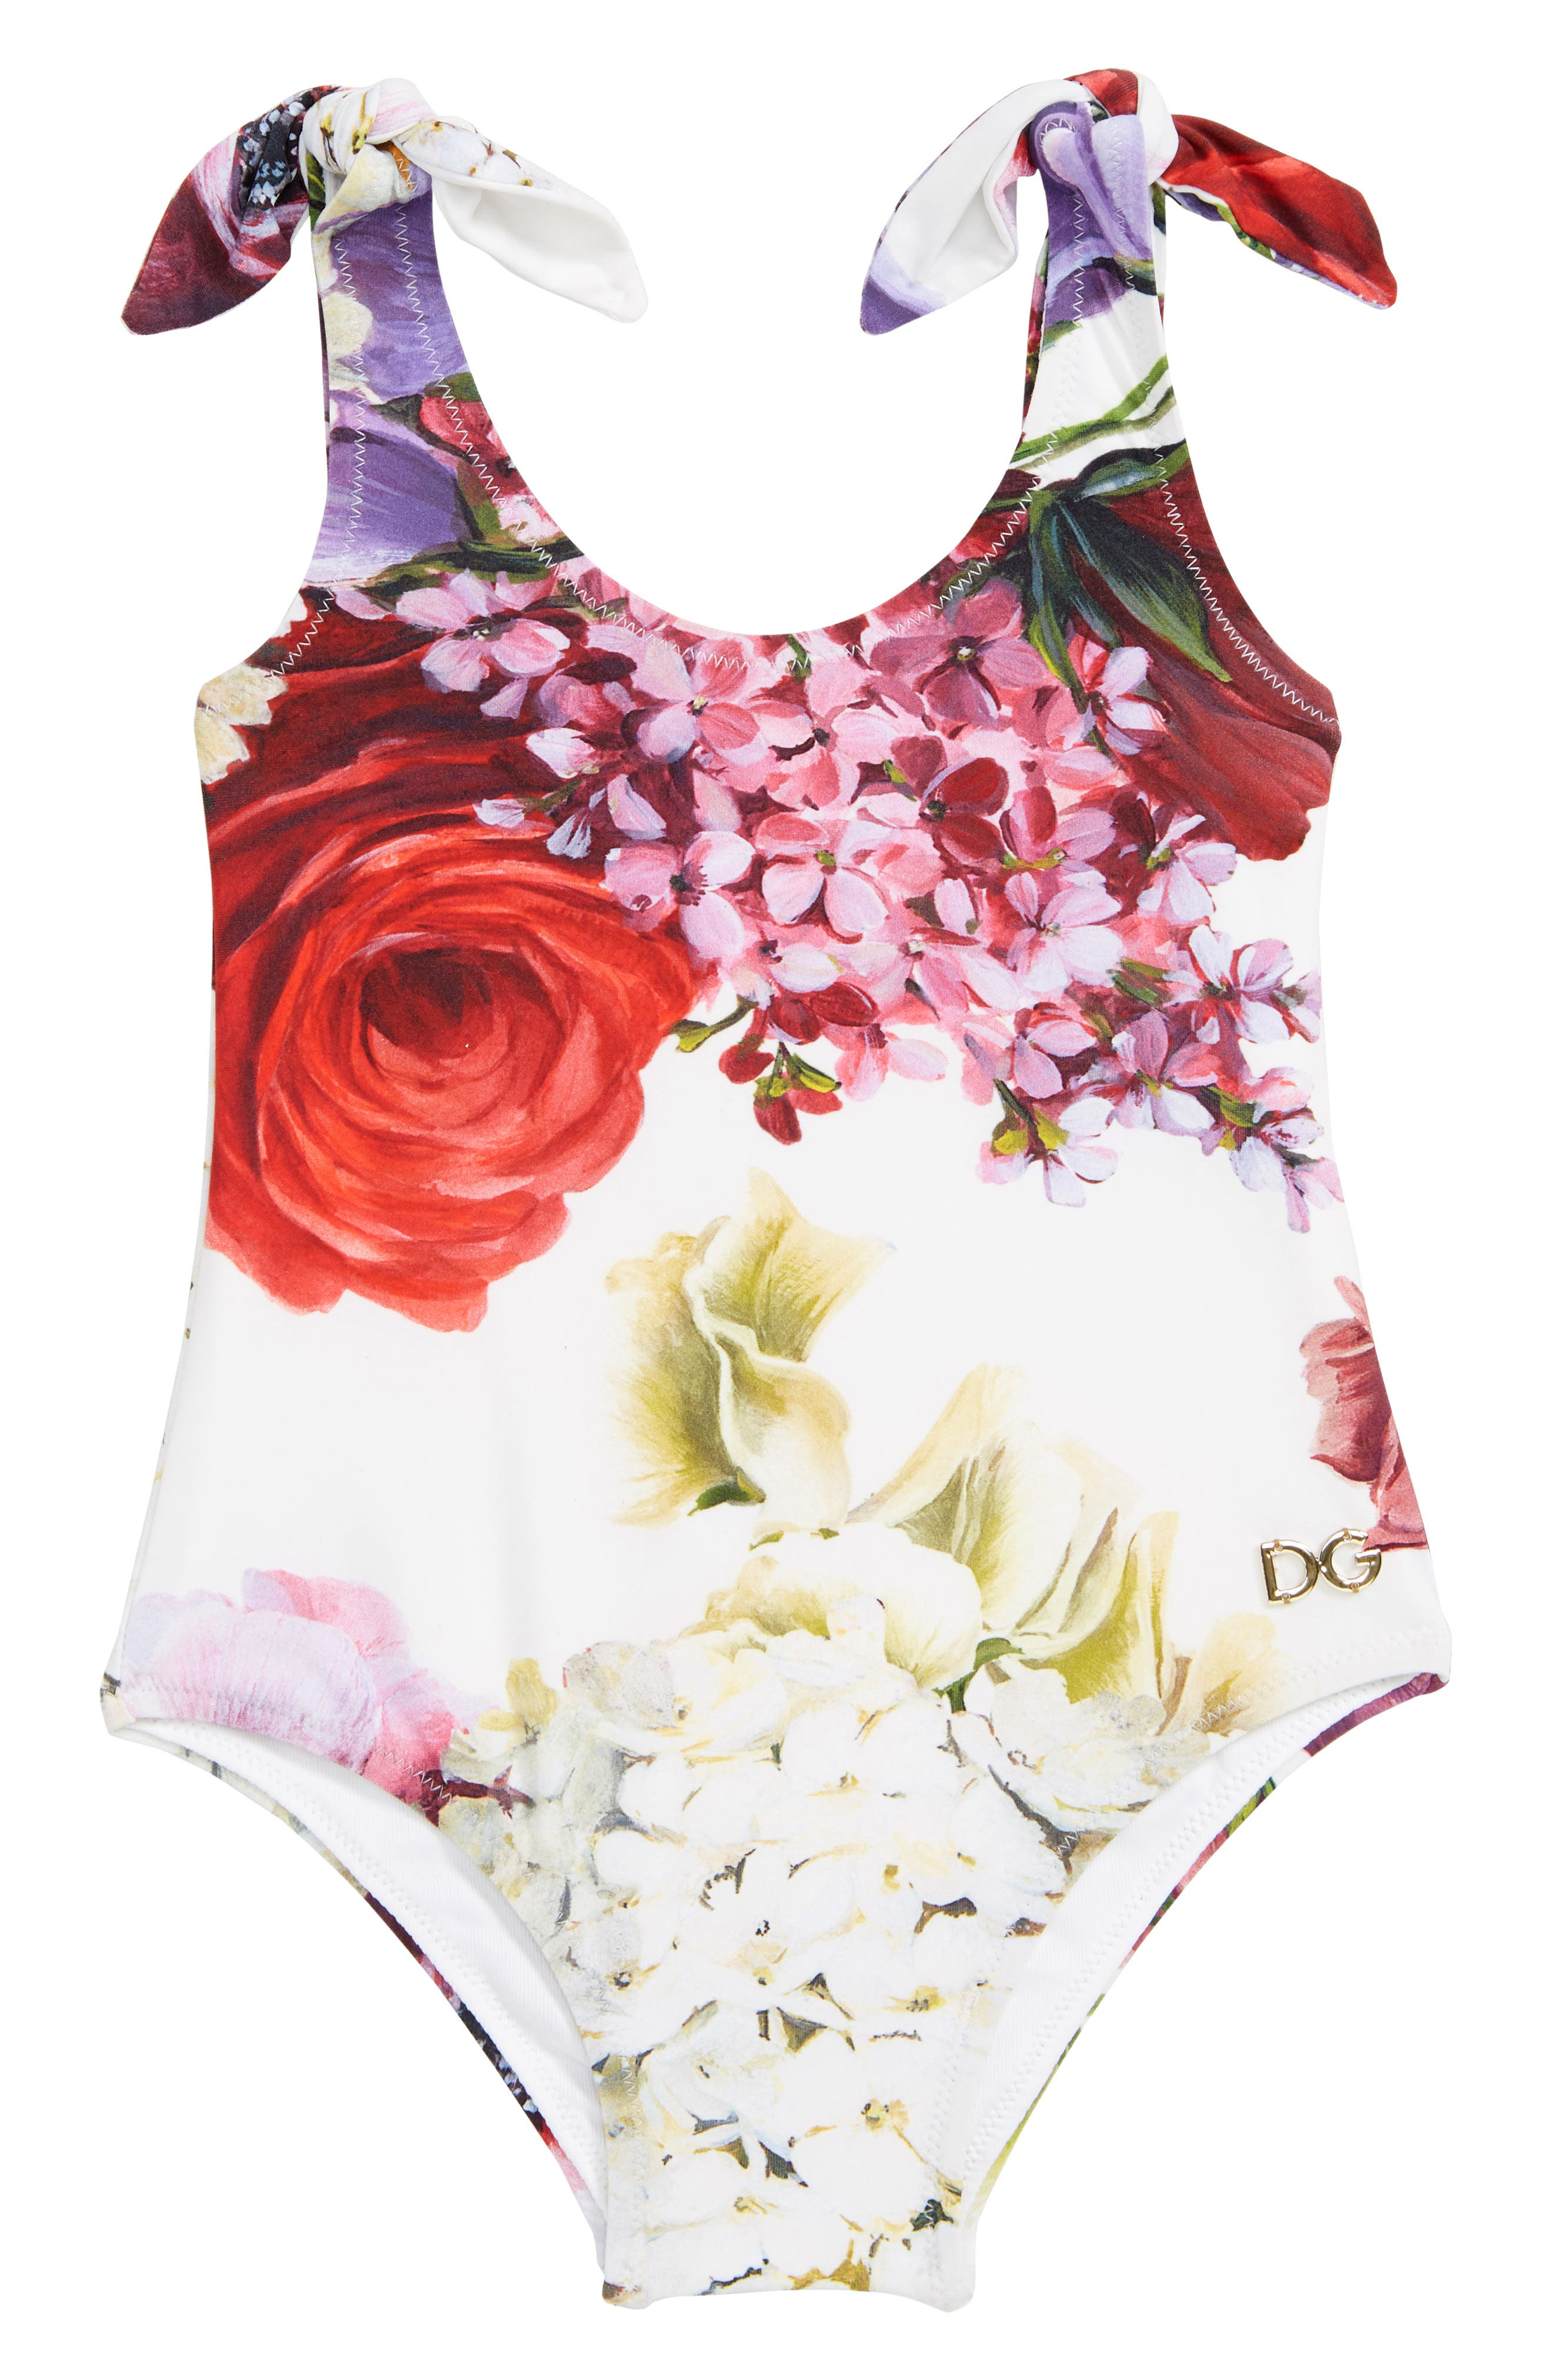 DOLCE&GABBANA, Intero One-Piece Swimsuit, Main thumbnail 1, color, ORTENSIE/ FIORI F.NAT